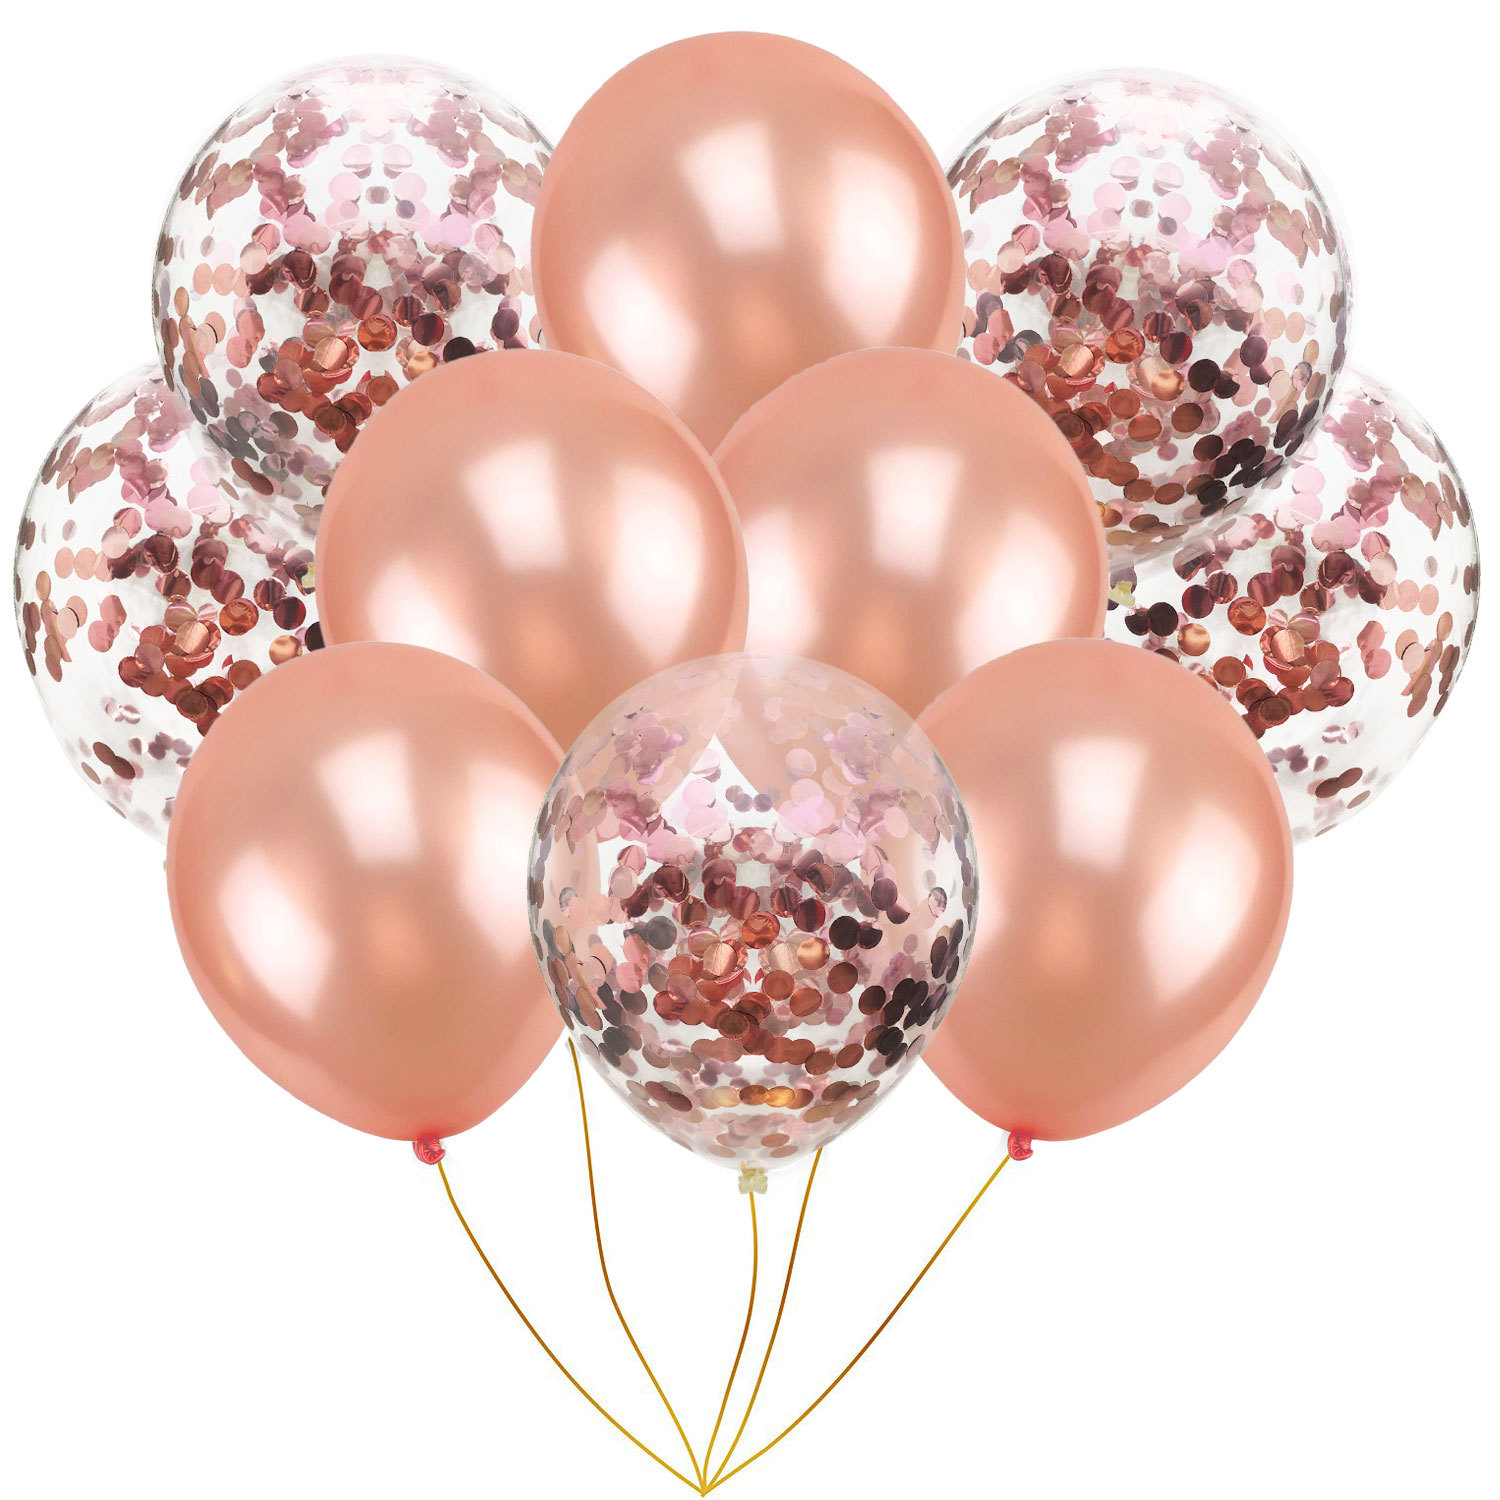 10pcs Mix Rose Gold Confetti Latex Balloons Pink 12 Inches Party Balloons for Baby Shower Bridal Shower Wedding Decorations нож для пиццы